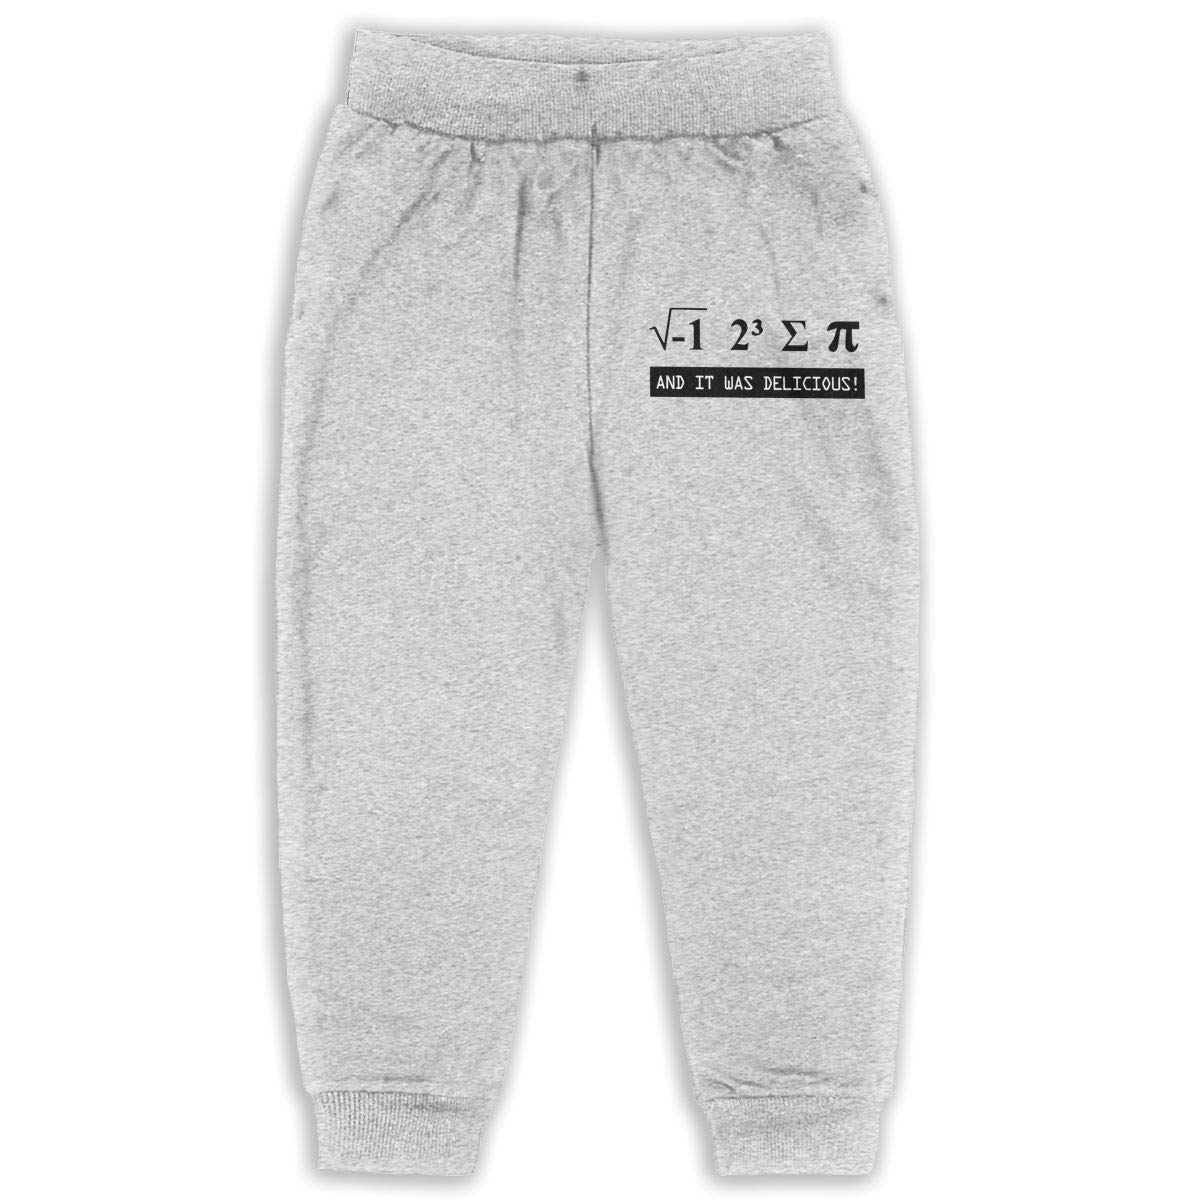 I Ate Some Pie and It was Delicious Unisex 2-6T Autumn and Winter Cotton Casual Pants Child